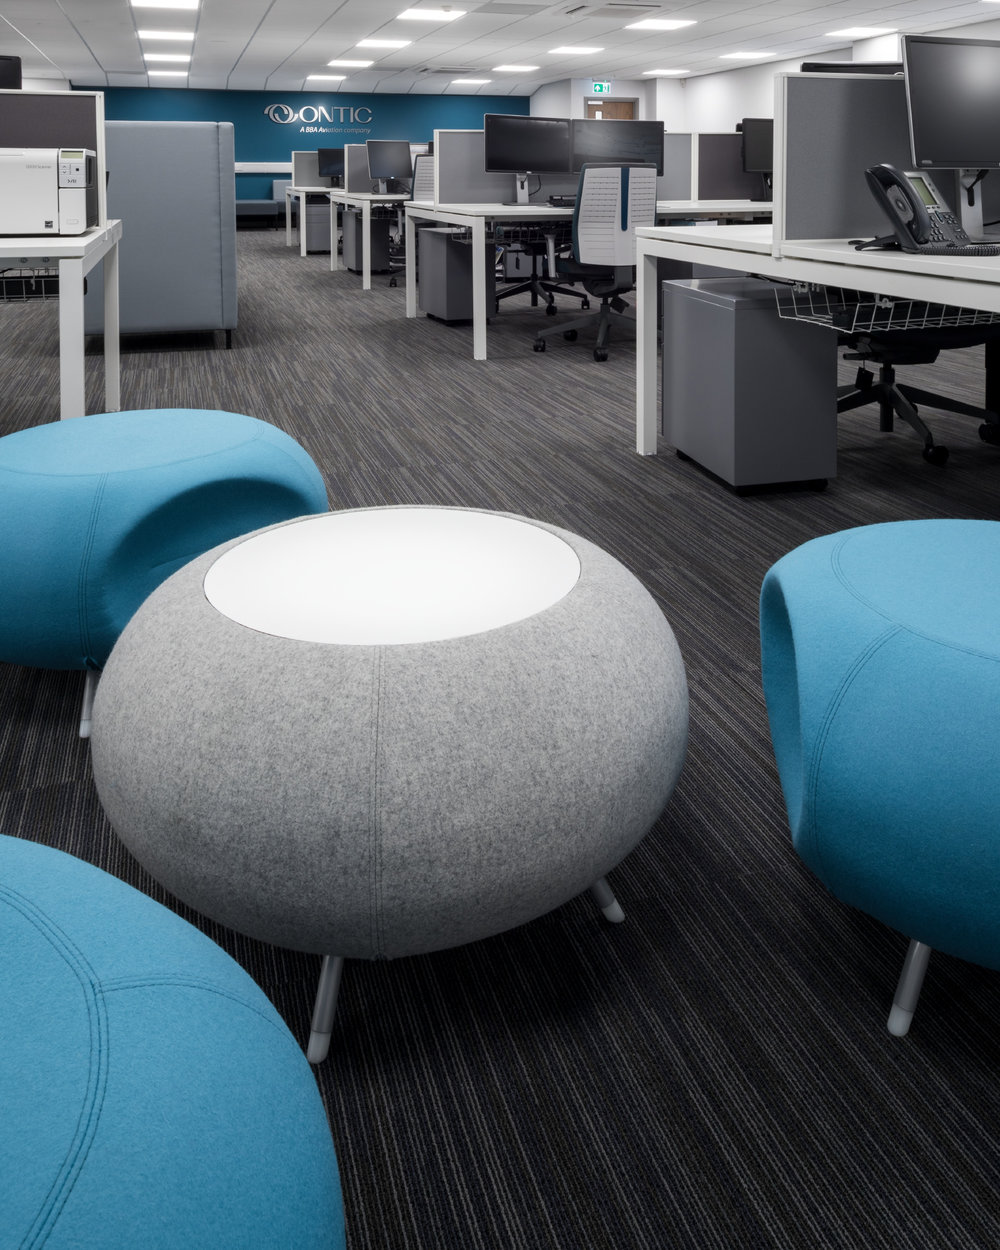 Ontic office stools.jpeg